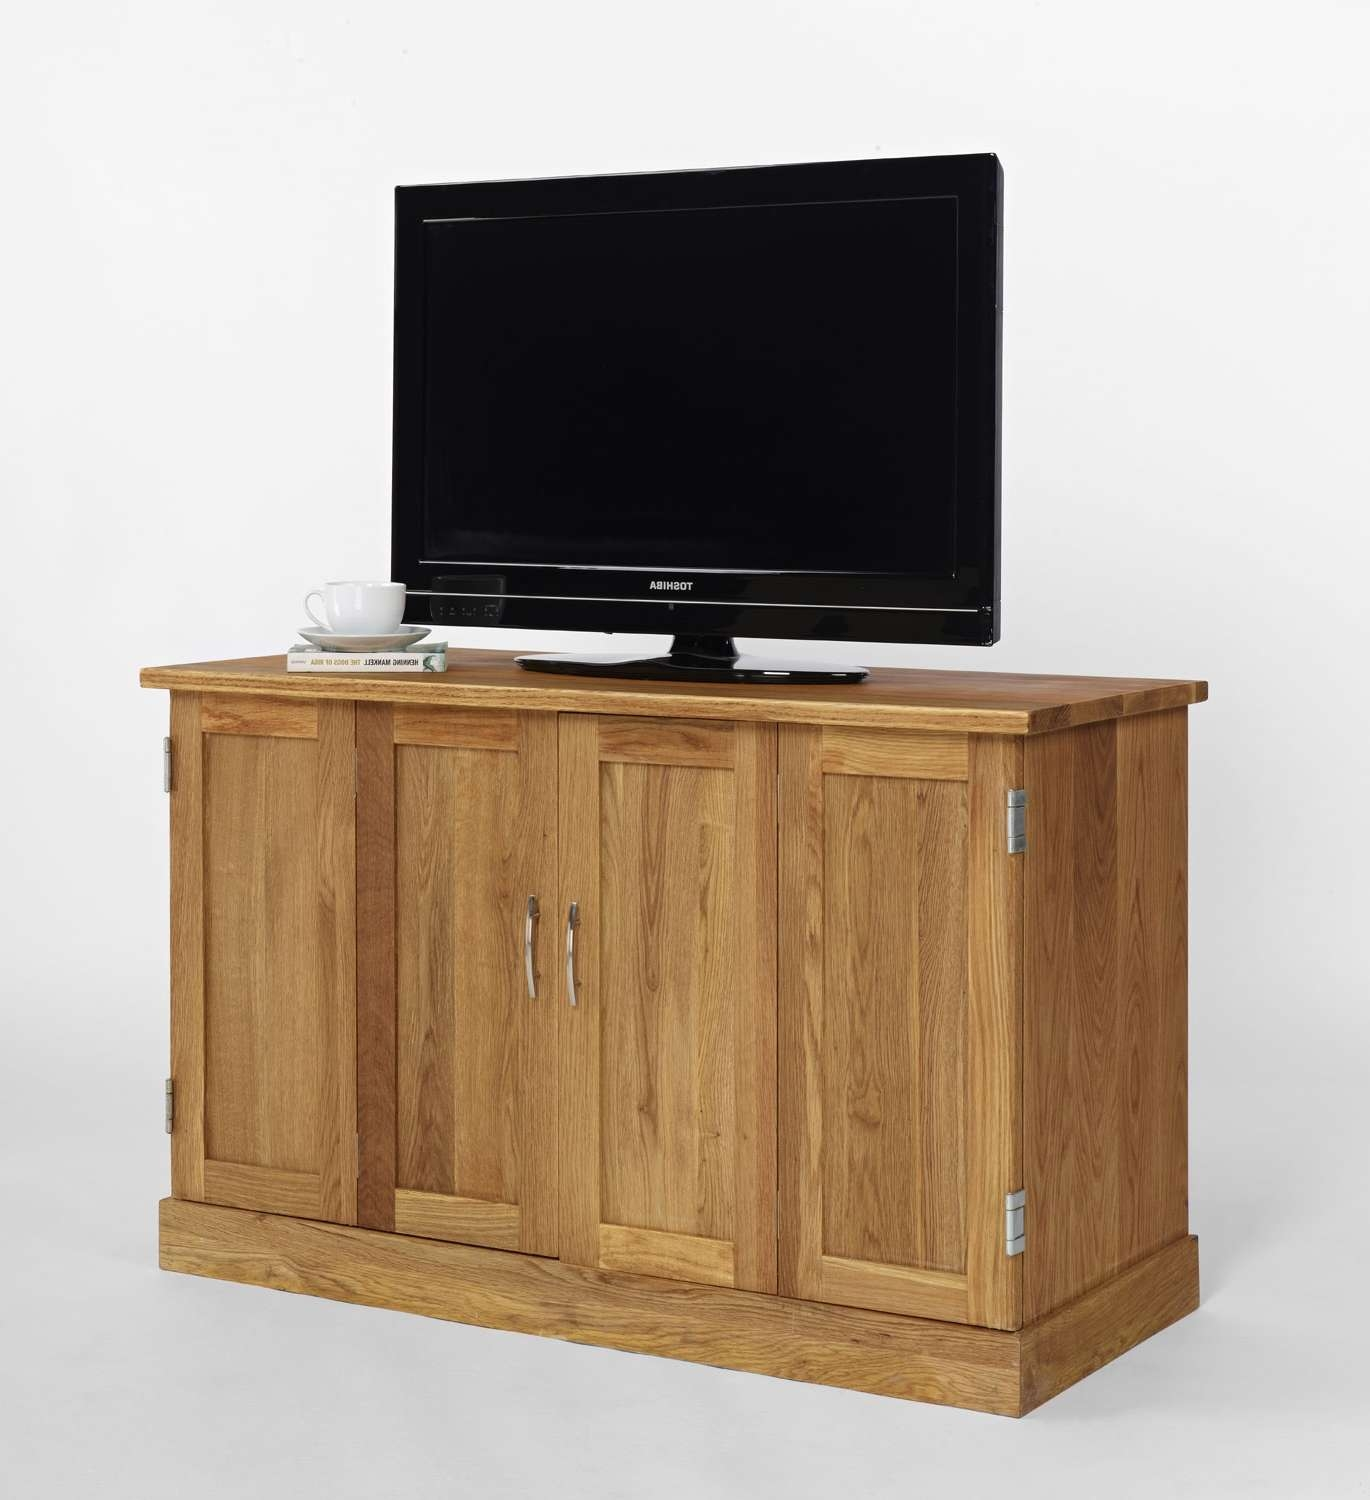 Brooklyn Contemporary Oak Widescreen Tv Cabinet For Contemporary Oak Tv Cabinets (View 5 of 20)